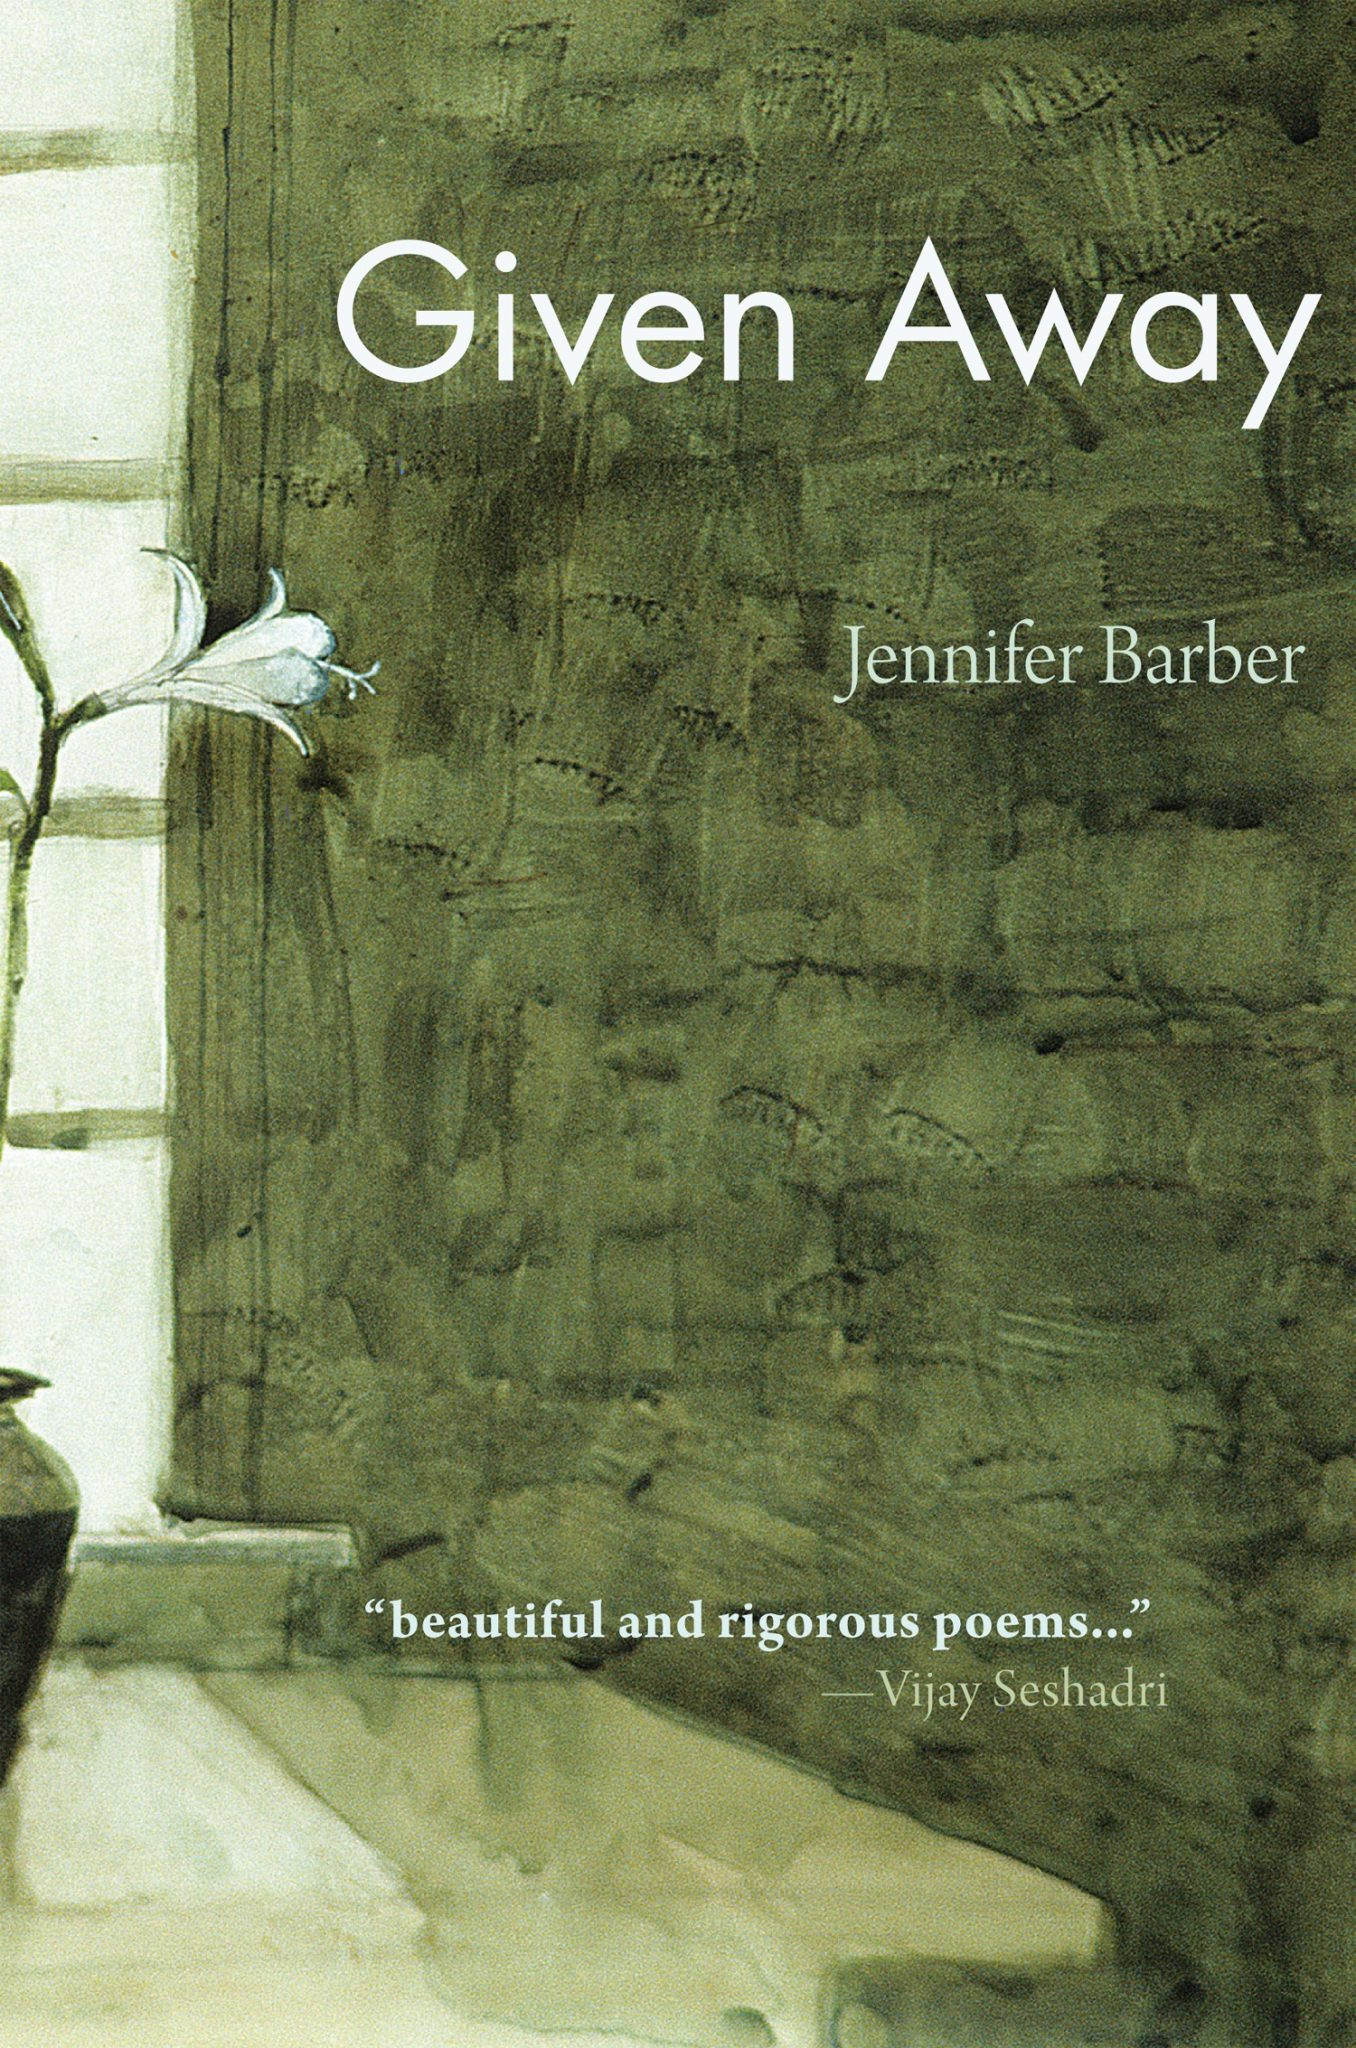 Cover of Given Away by Jennifer Barber